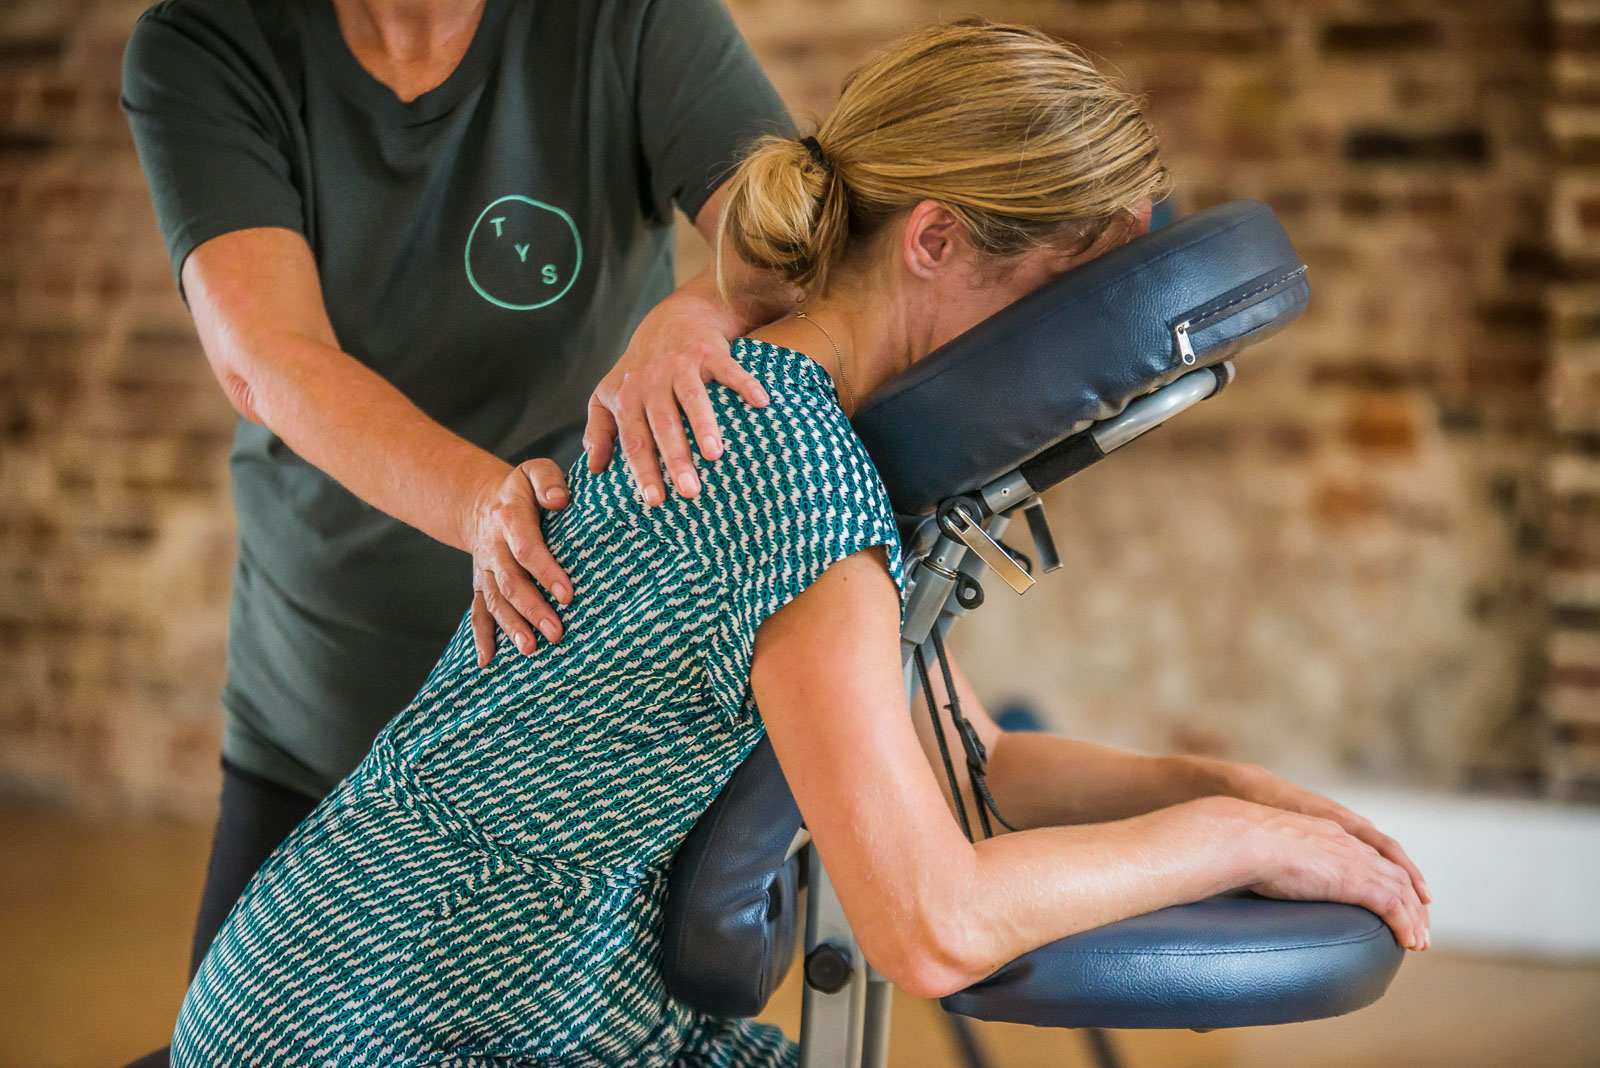 Professional Business Brand Photoshoot for TYS Massage Wll-being Service Company based in Brighton specialising using massage chair, yoga